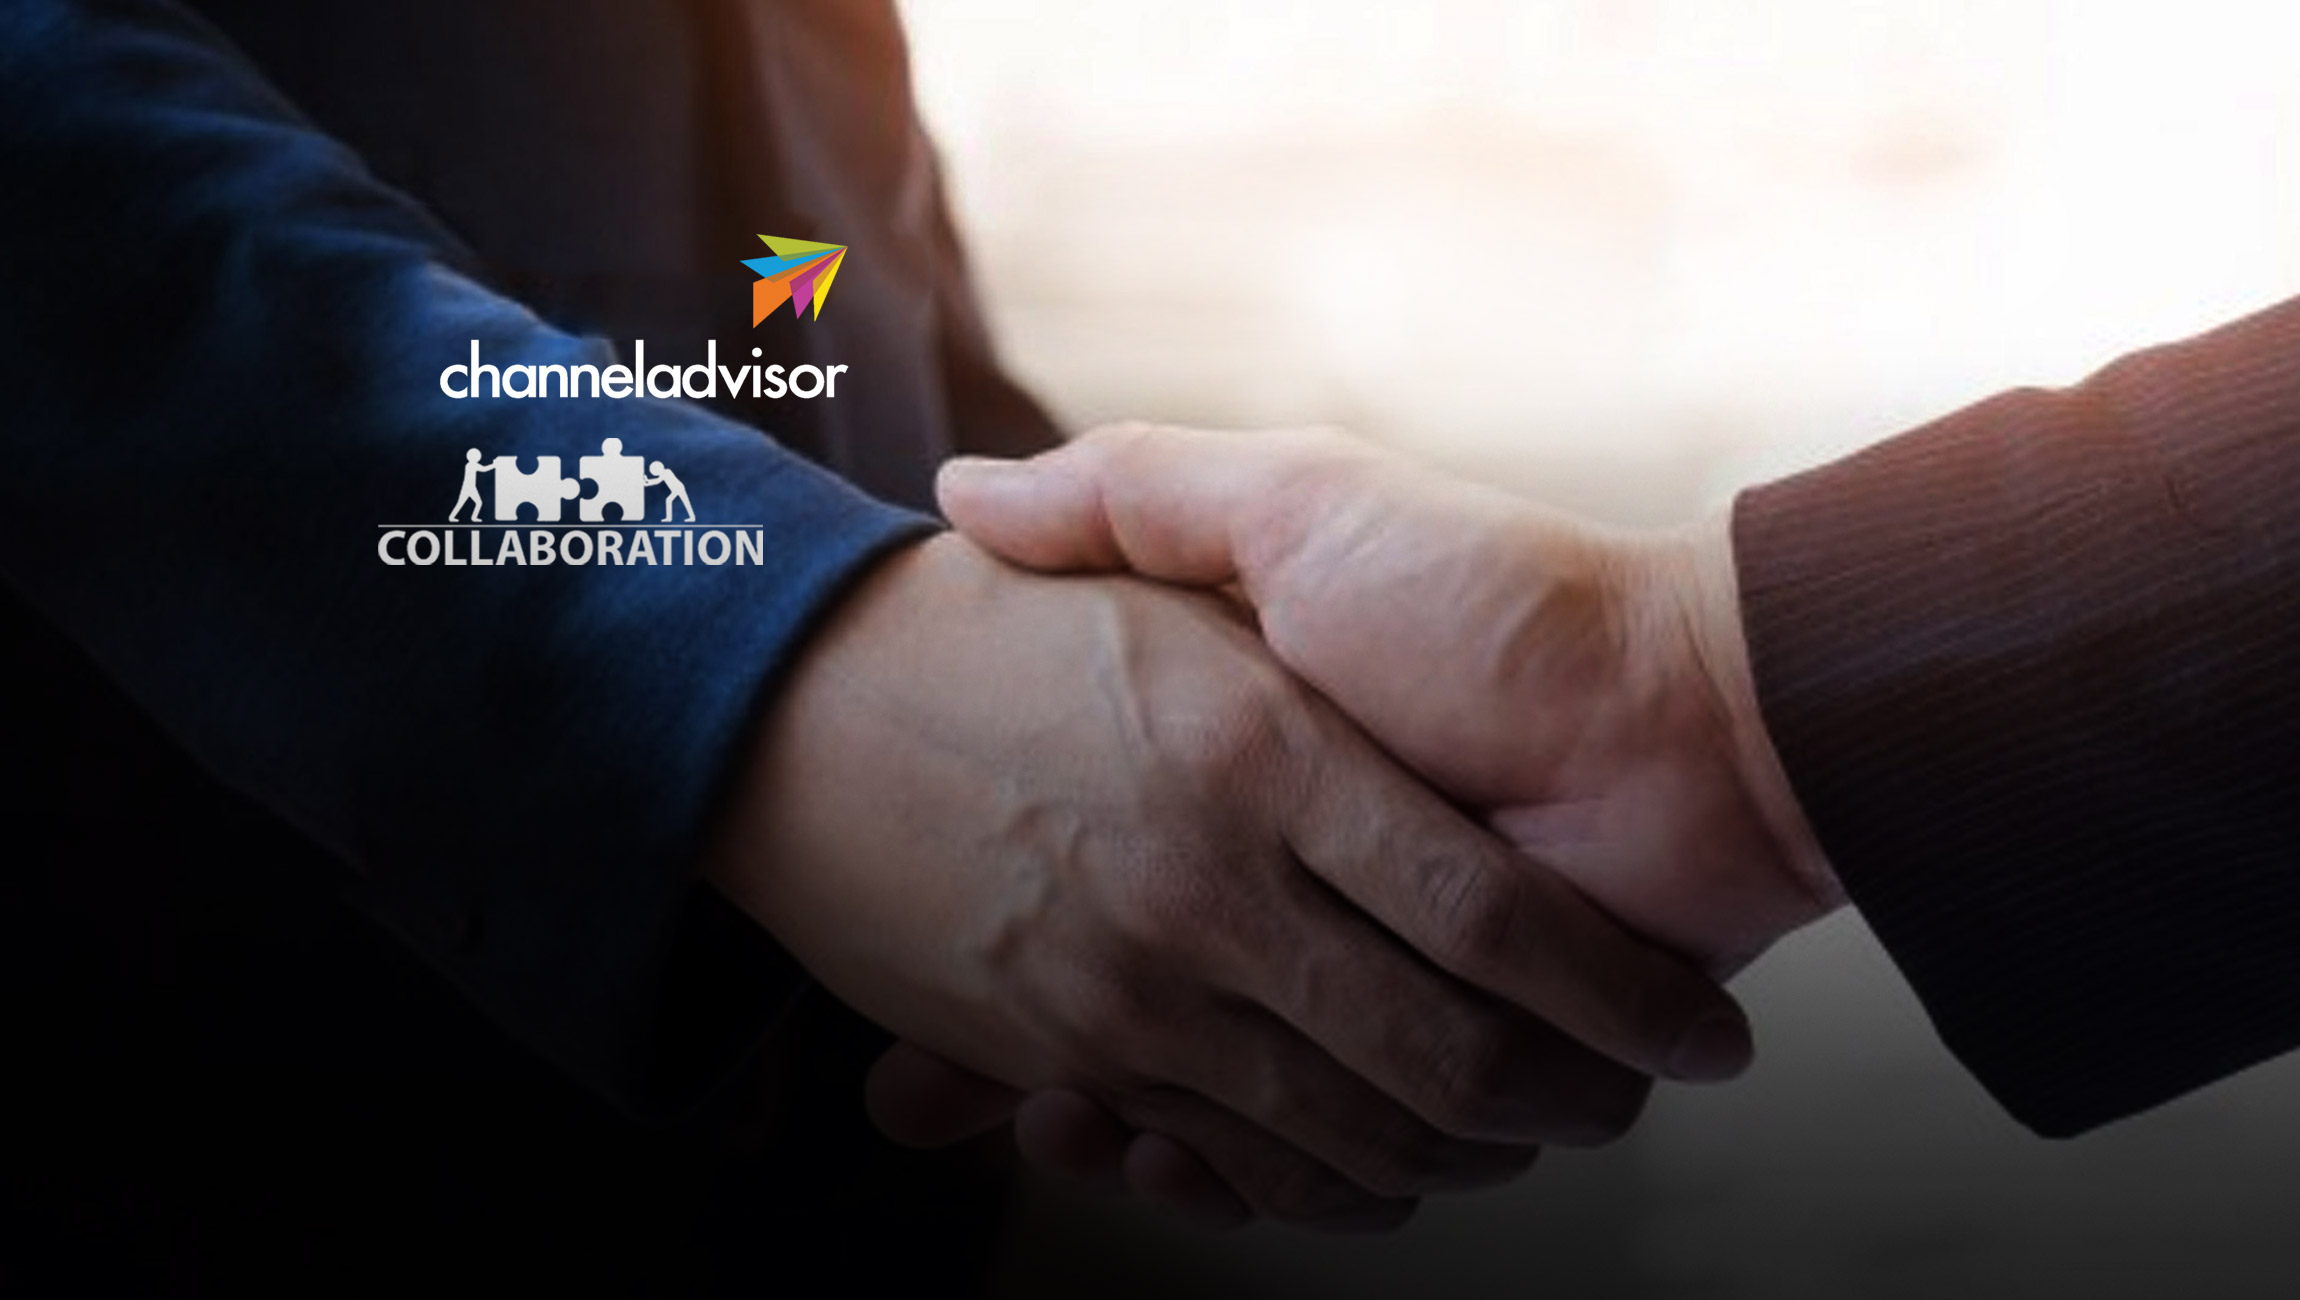 ChannelAdvisor partners with ShipStation and Launches ChannelAdvisor Starter Edition